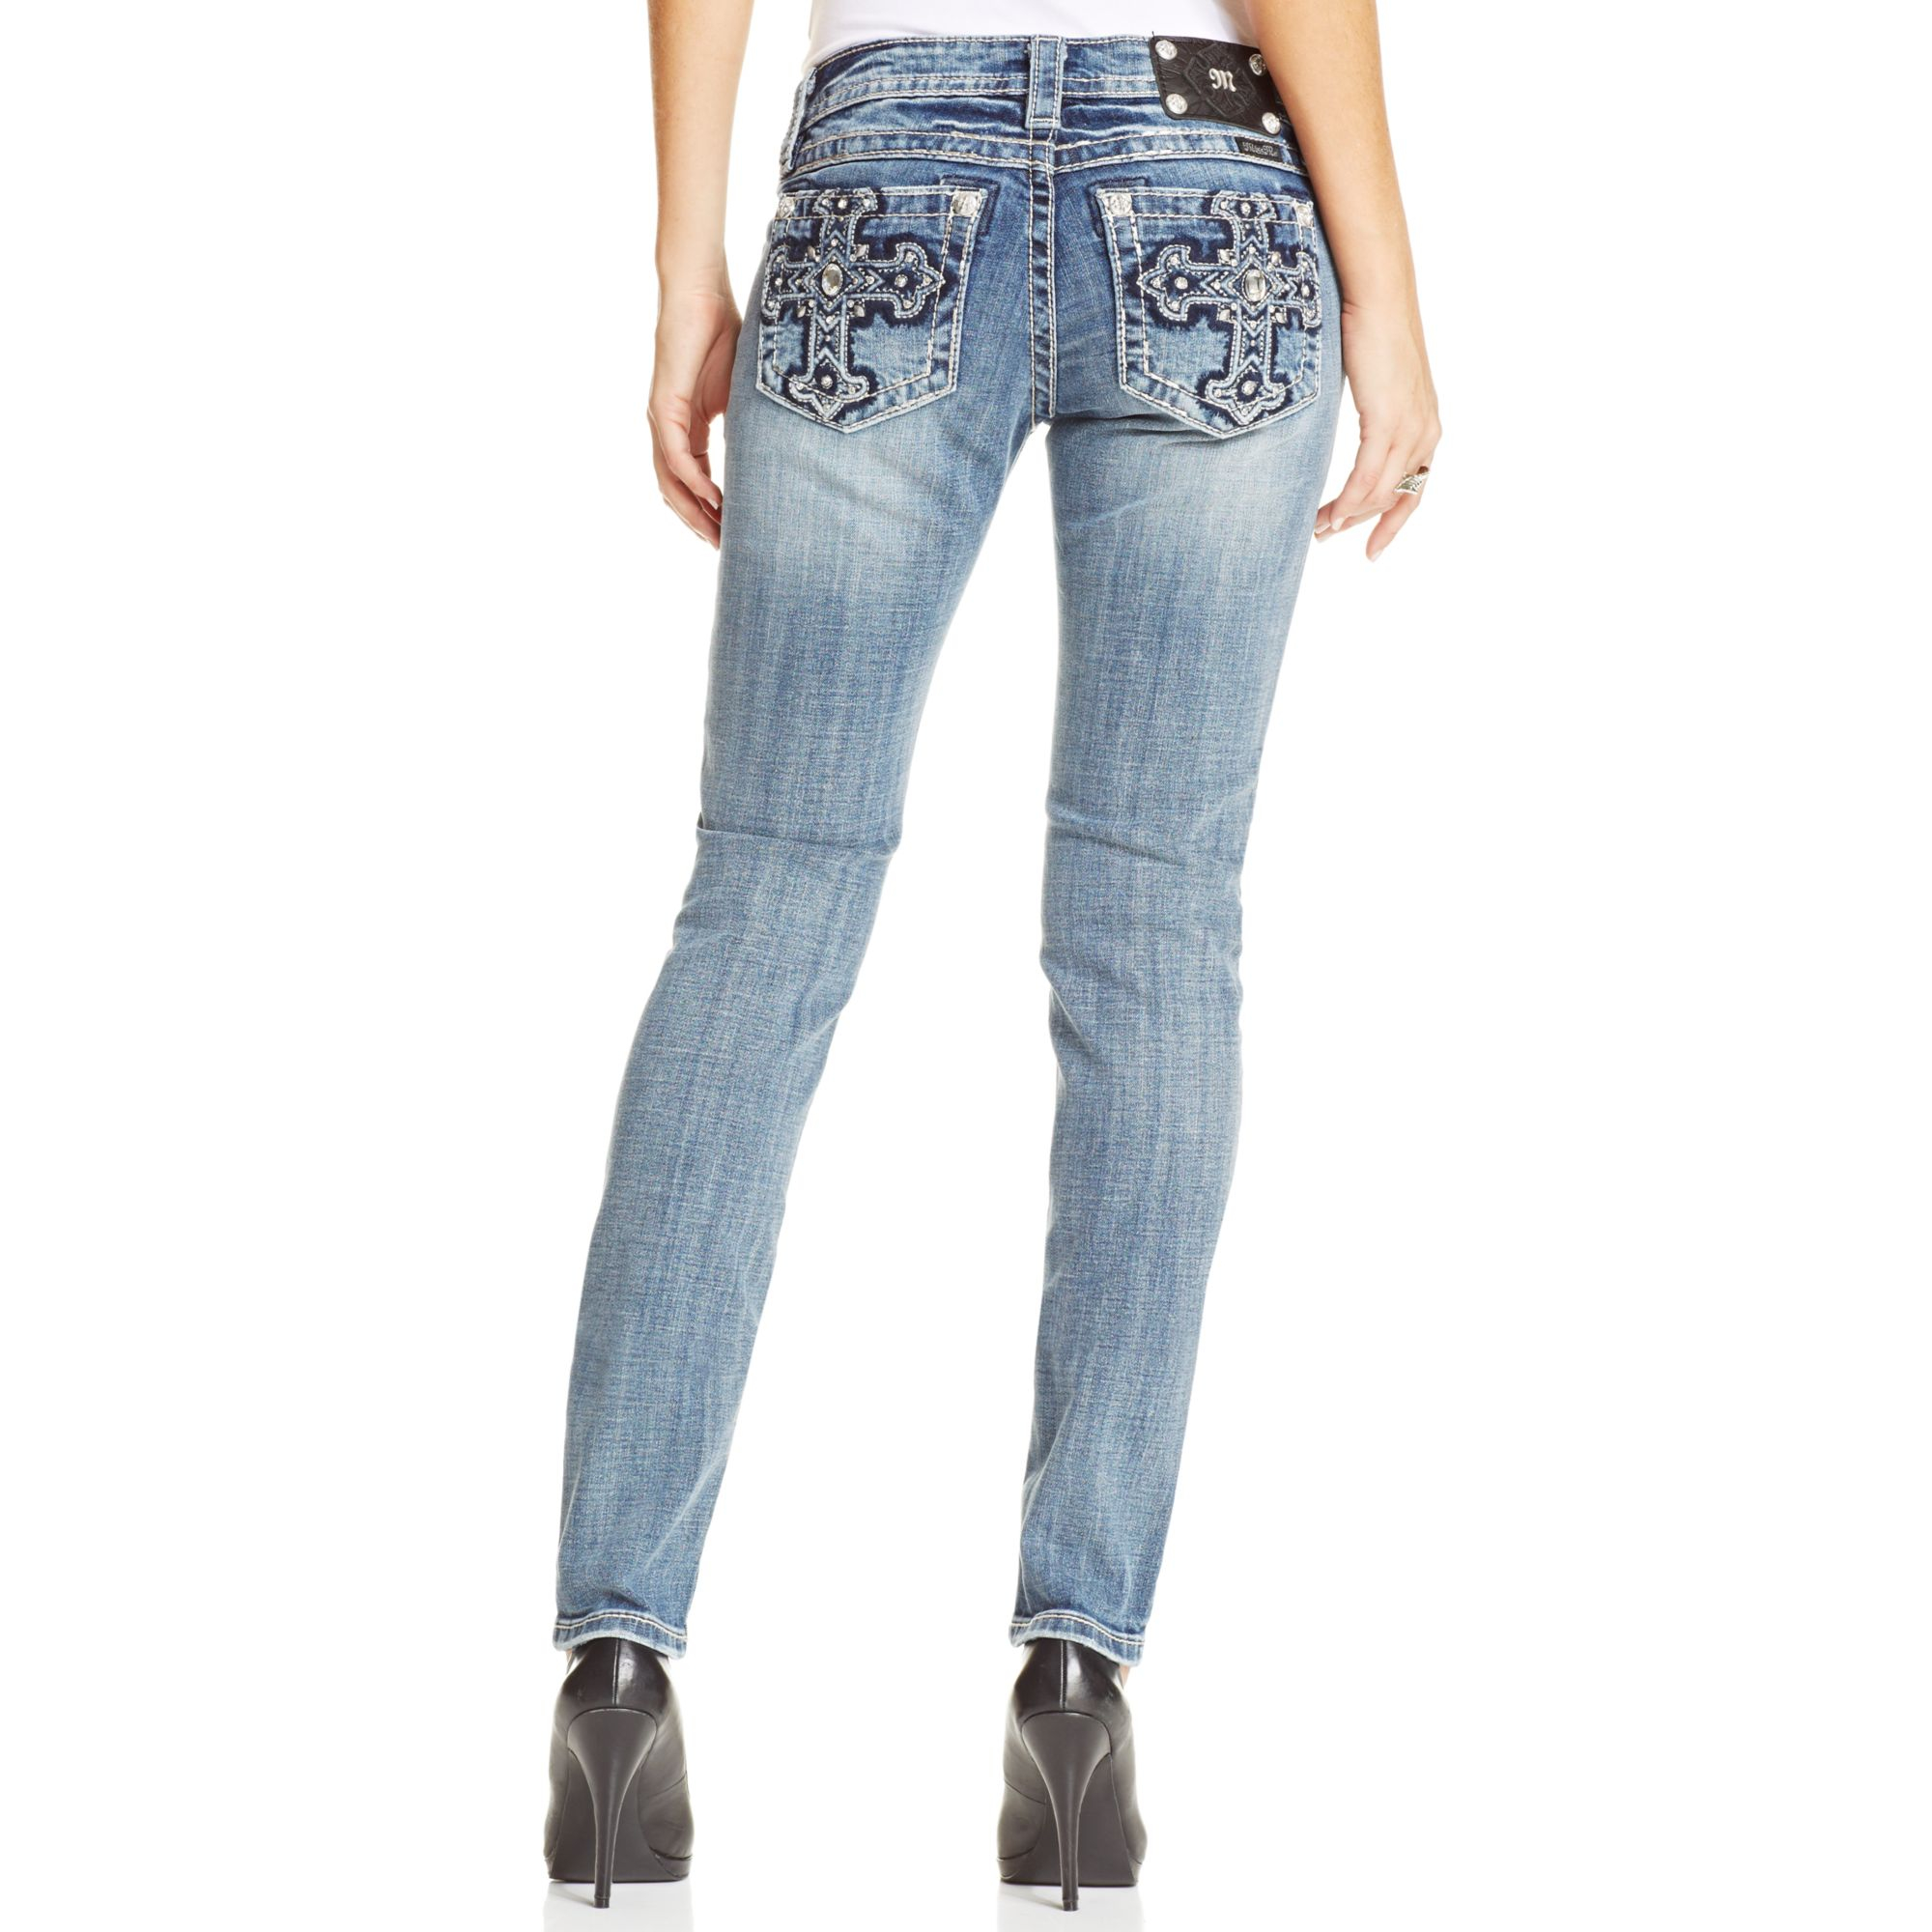 Womens Jeans With Embellished Pockets